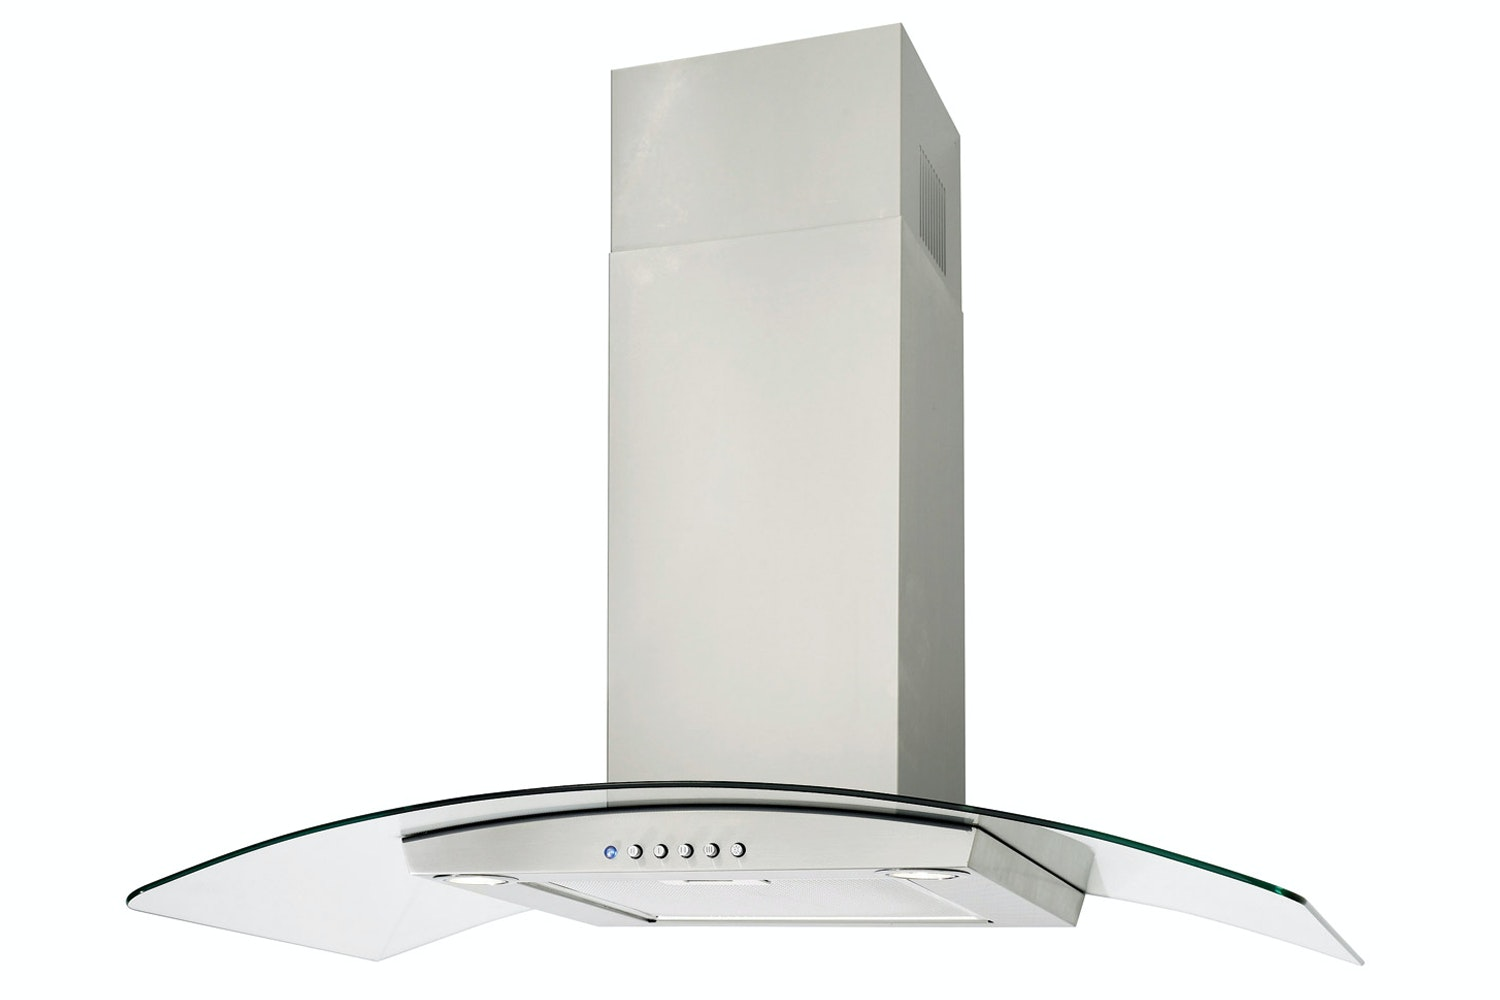 Luxair 60cm Valore Curved Glass Cooker Hood | LA60VALSS